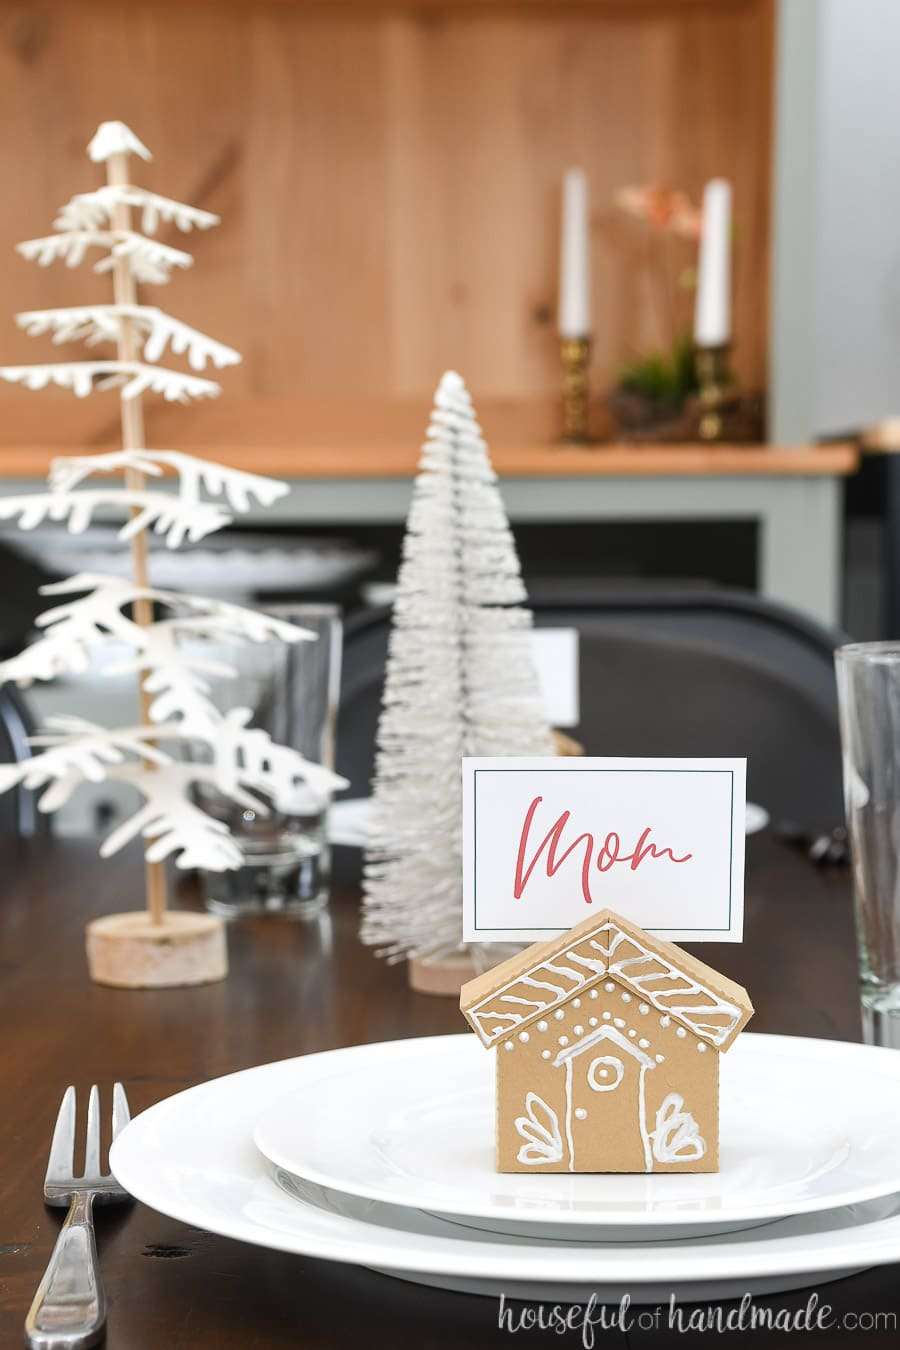 Christmas table set with Christmas trees as the centerpiece, white plates, with a brown paper gingerbread house place card holder sitting on them.